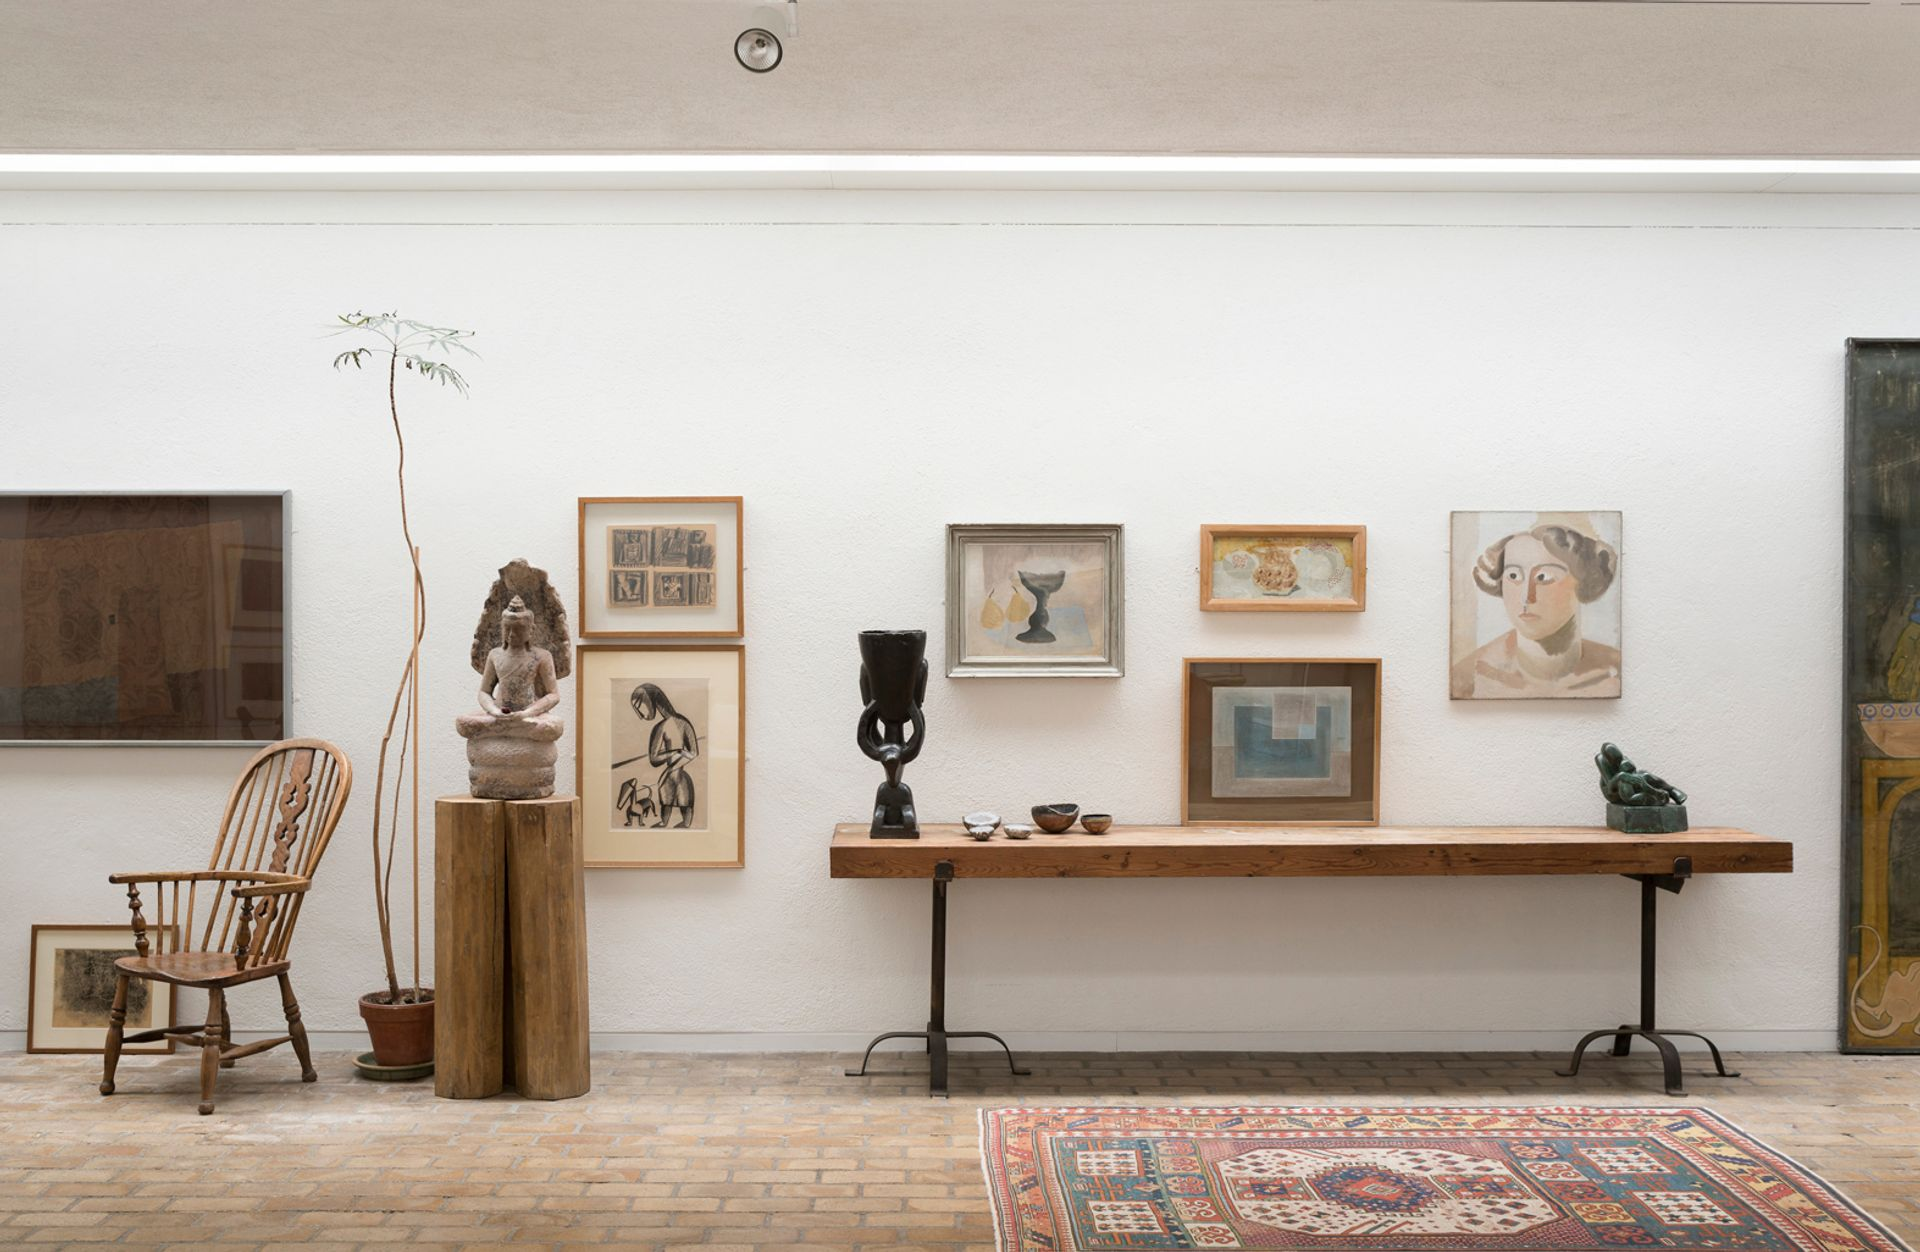 The permanent collection in the light-filled 1970s extension of Kettle's Yard Kettle's Yard